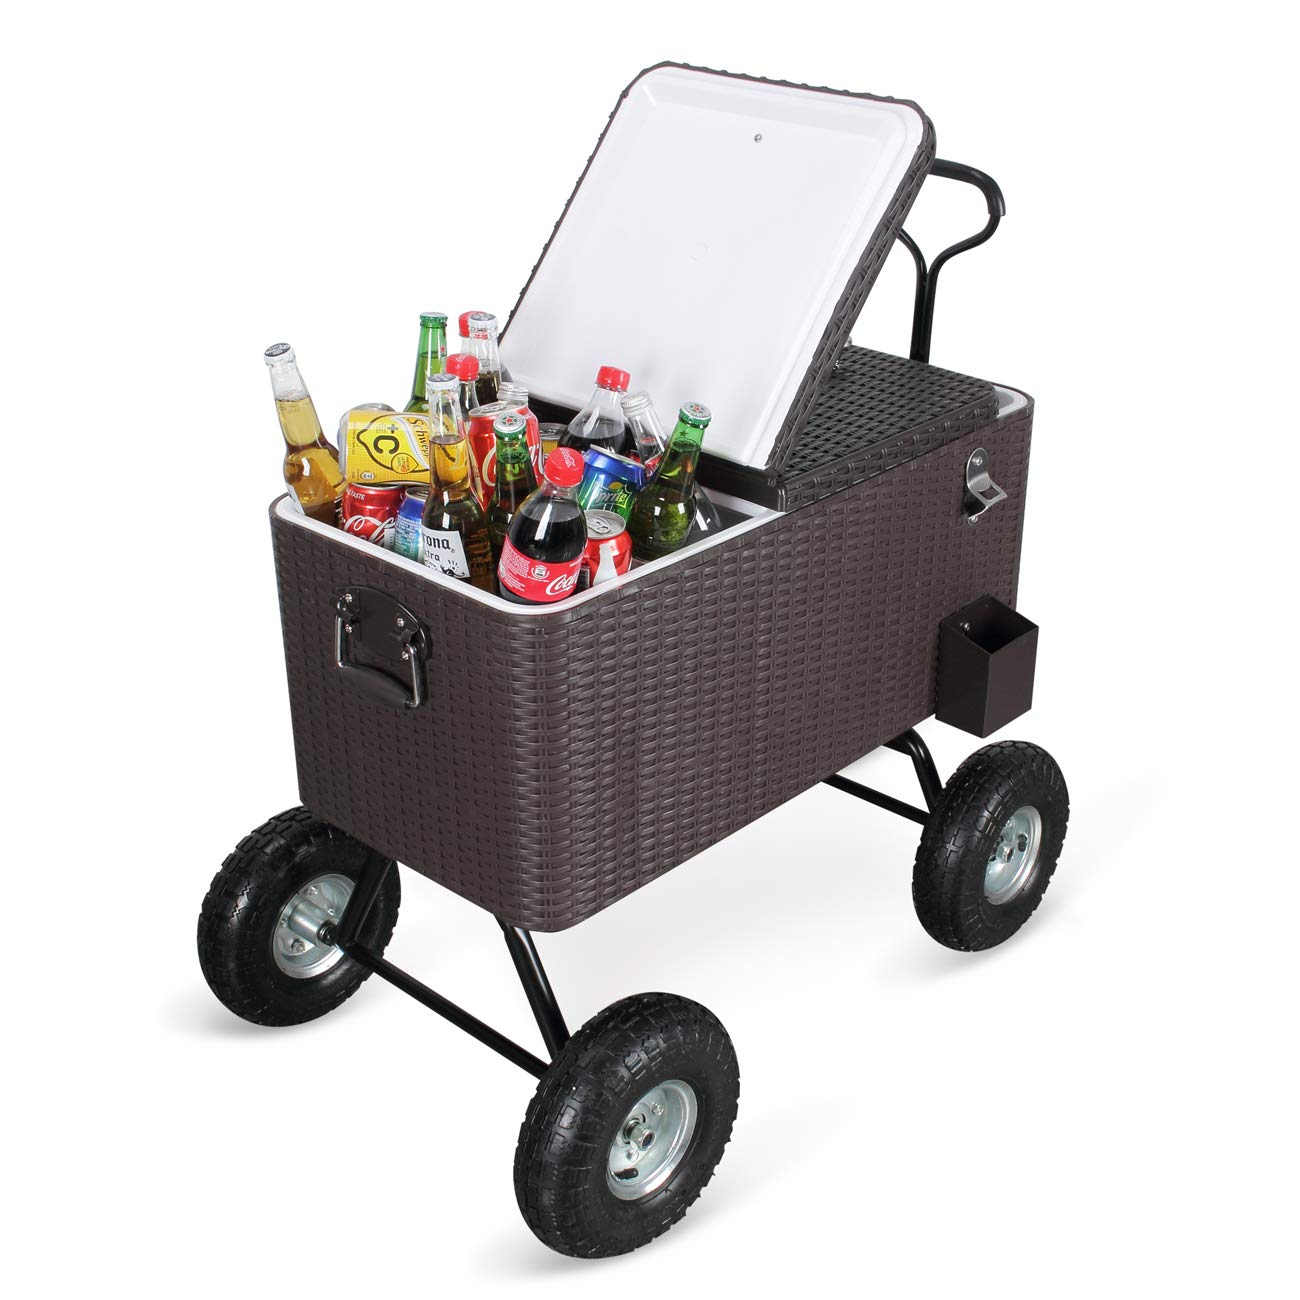 Belleze Portable 80 Qt Cold Drink Cooler Wagon Backyard Patio Beach Party w Built-in Bottle Opener and Catch Tray